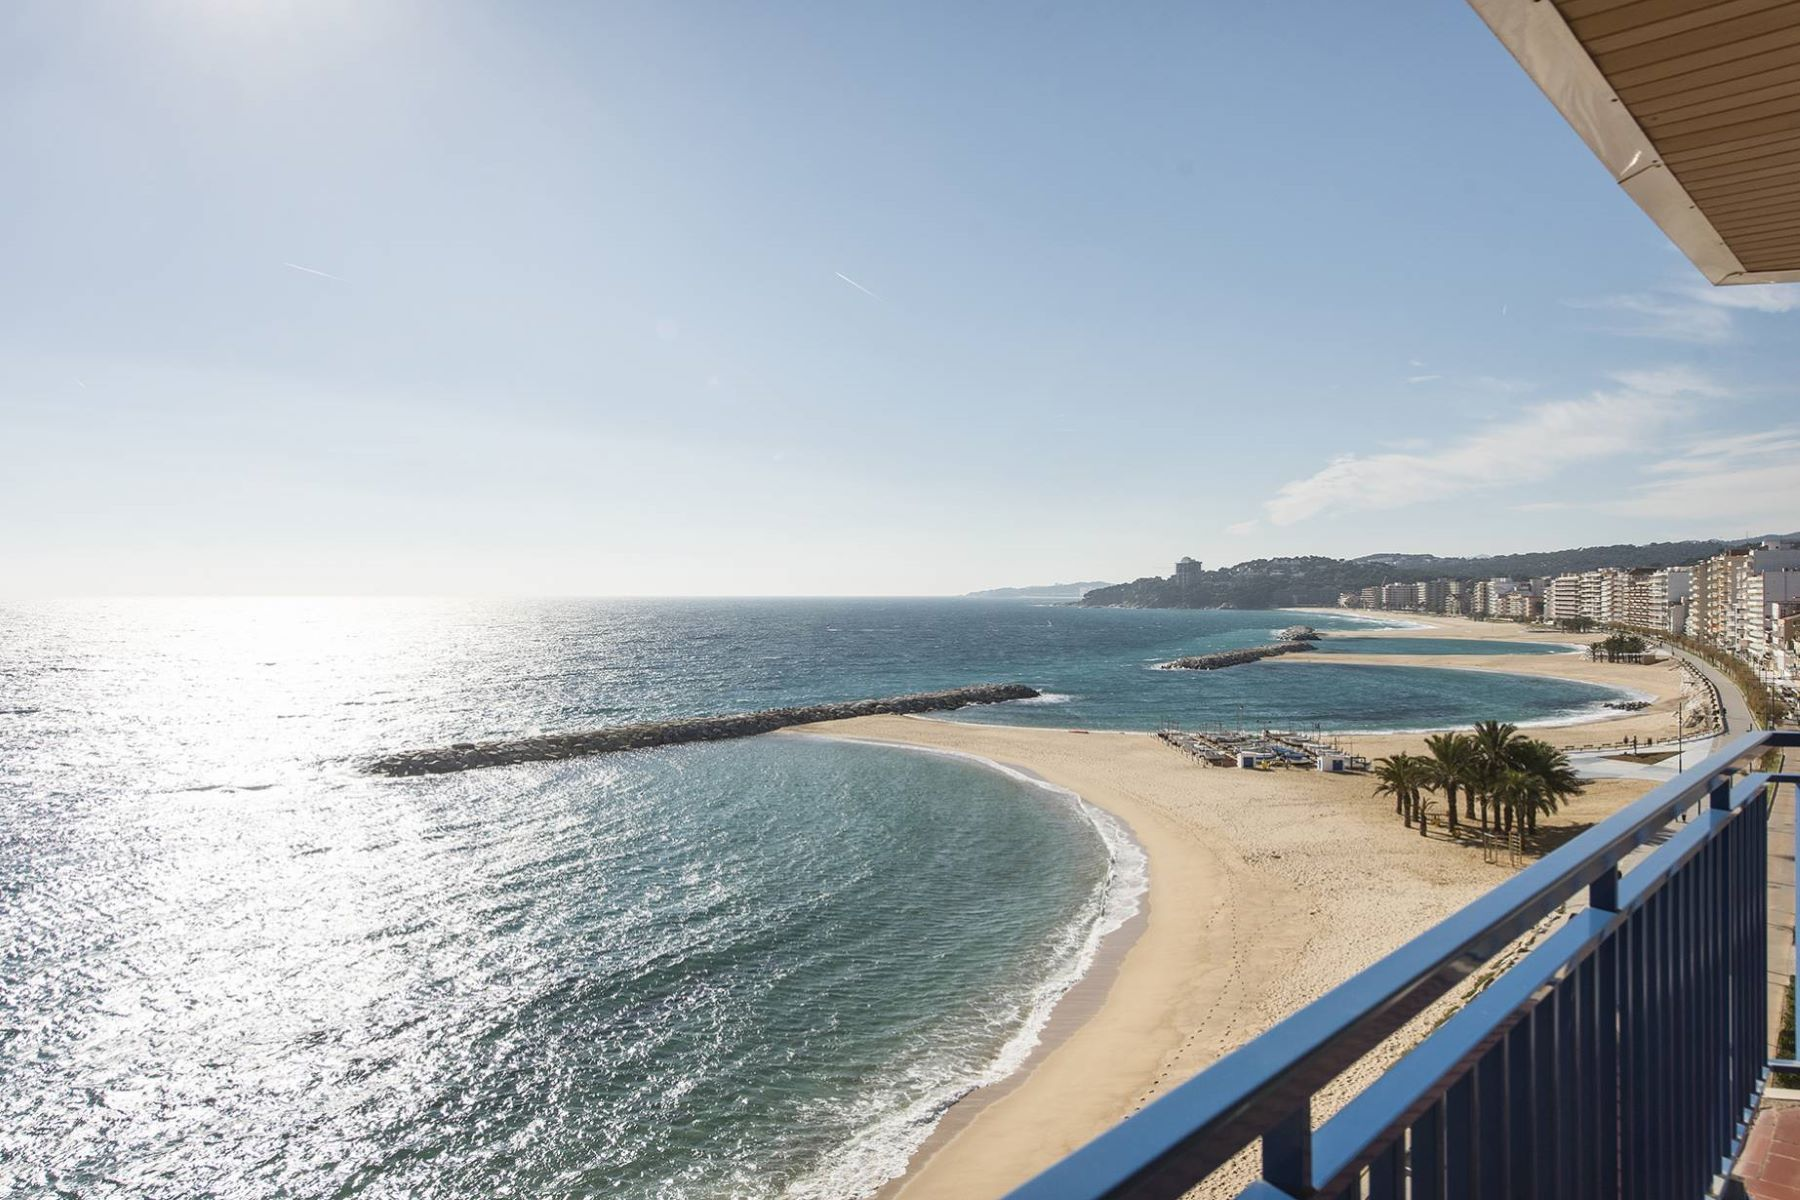 Apartment for Sale at Great apartment on a whole floor in front of the sea Sant Antoni De Calonge, Costa Brava 17252 Spain